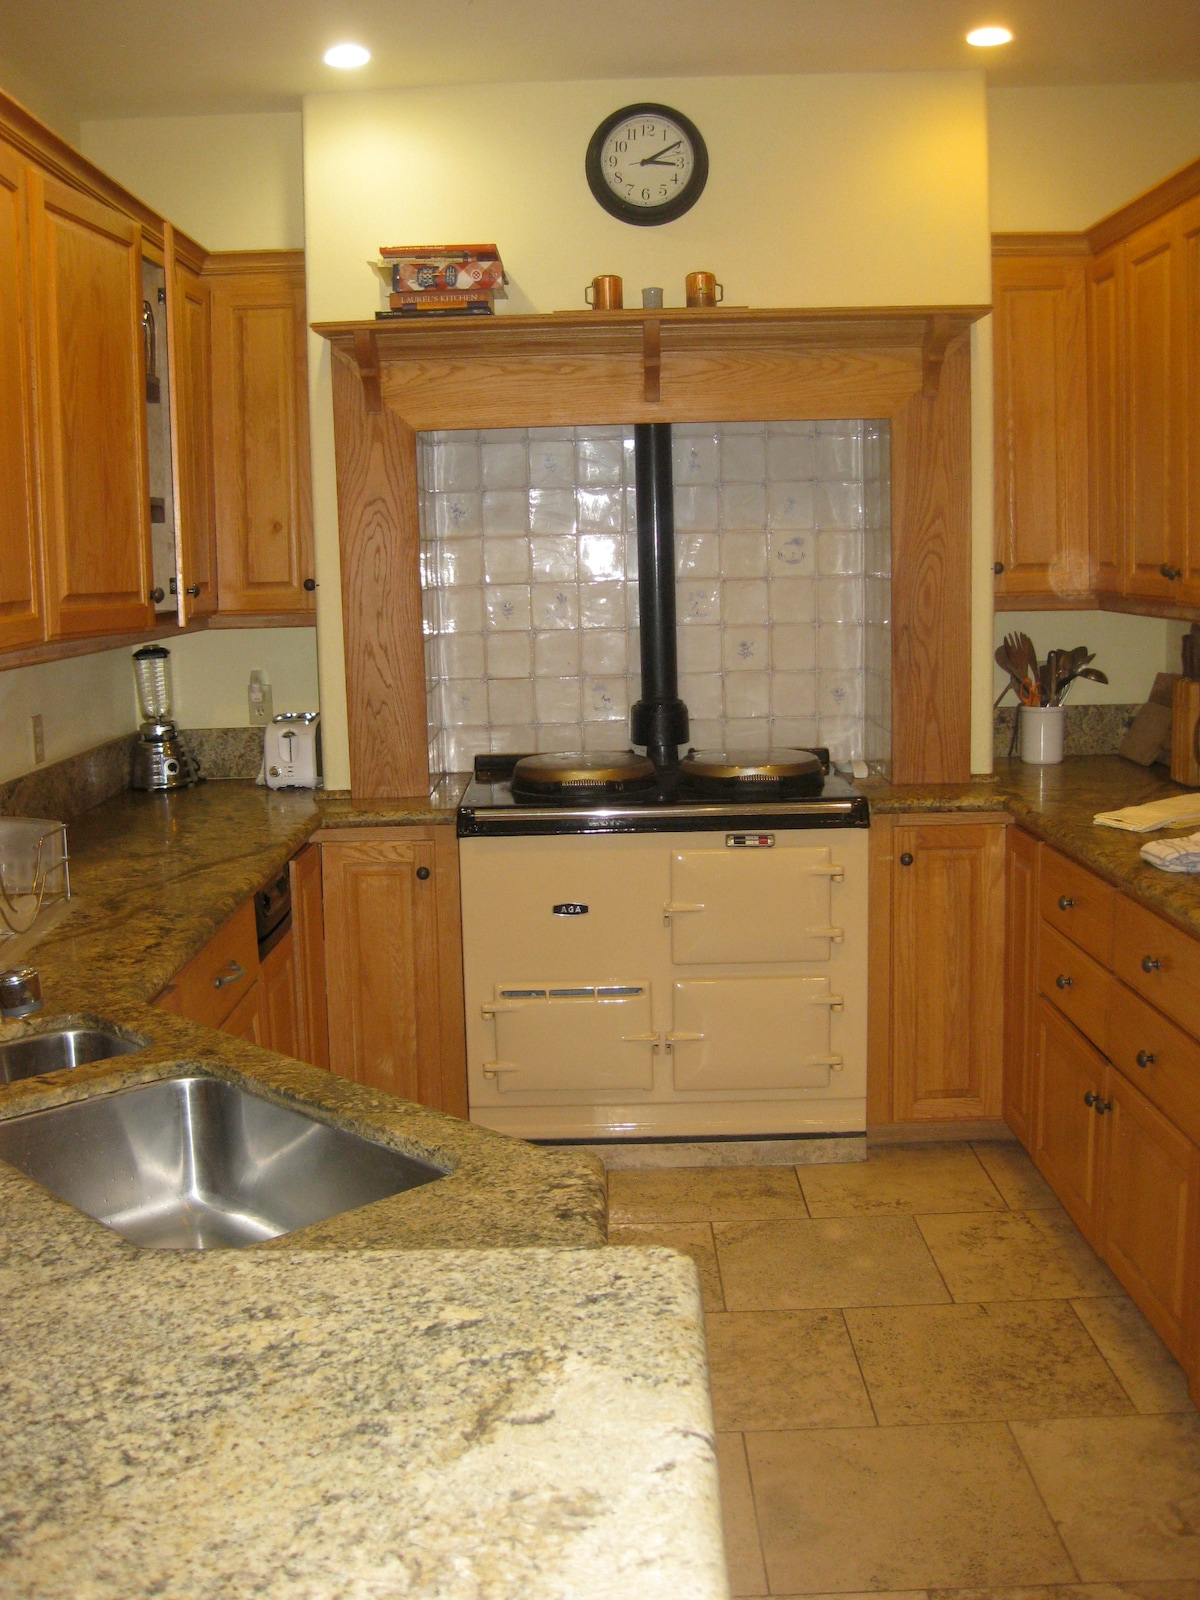 Kitchen with Aga stove